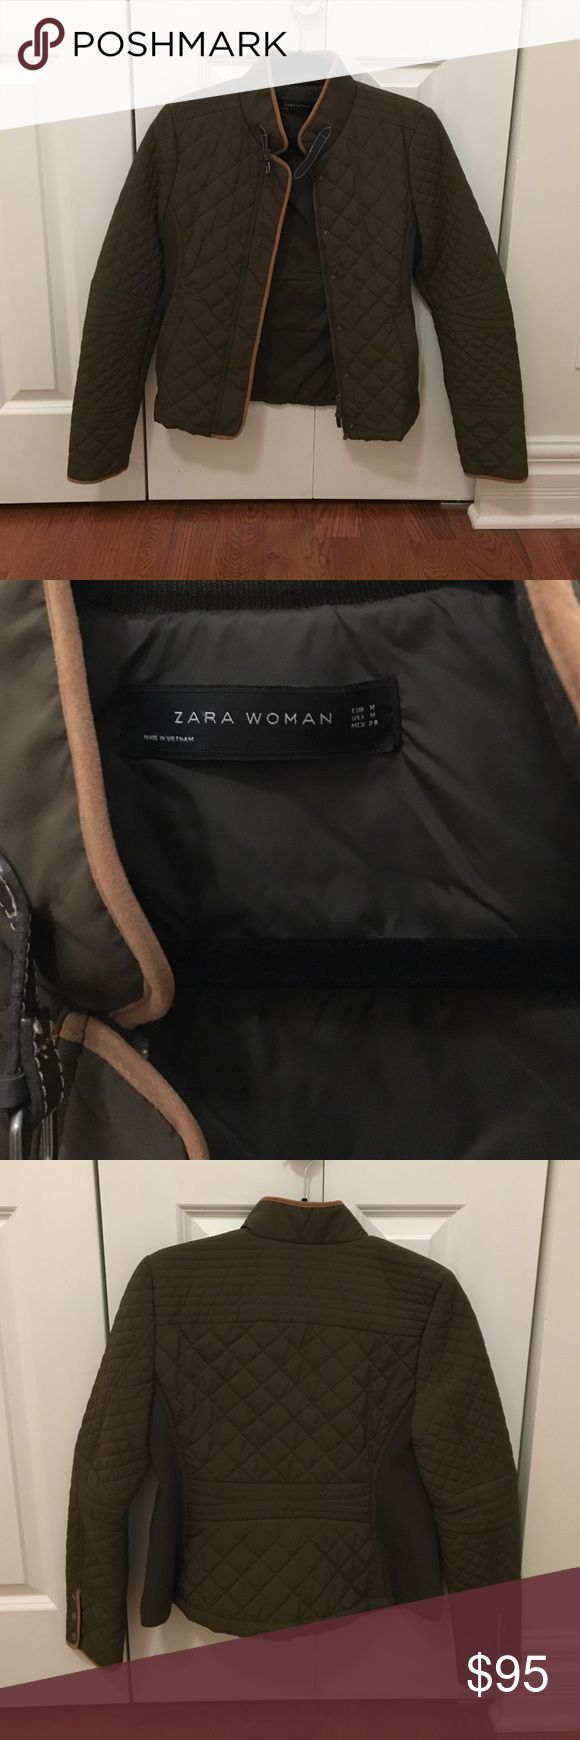 Zara Jacket Women's Zara quilted coat. Olive green color with brown trim. This coat has barely been worn and is in great condition! Zara Jackets & Coats